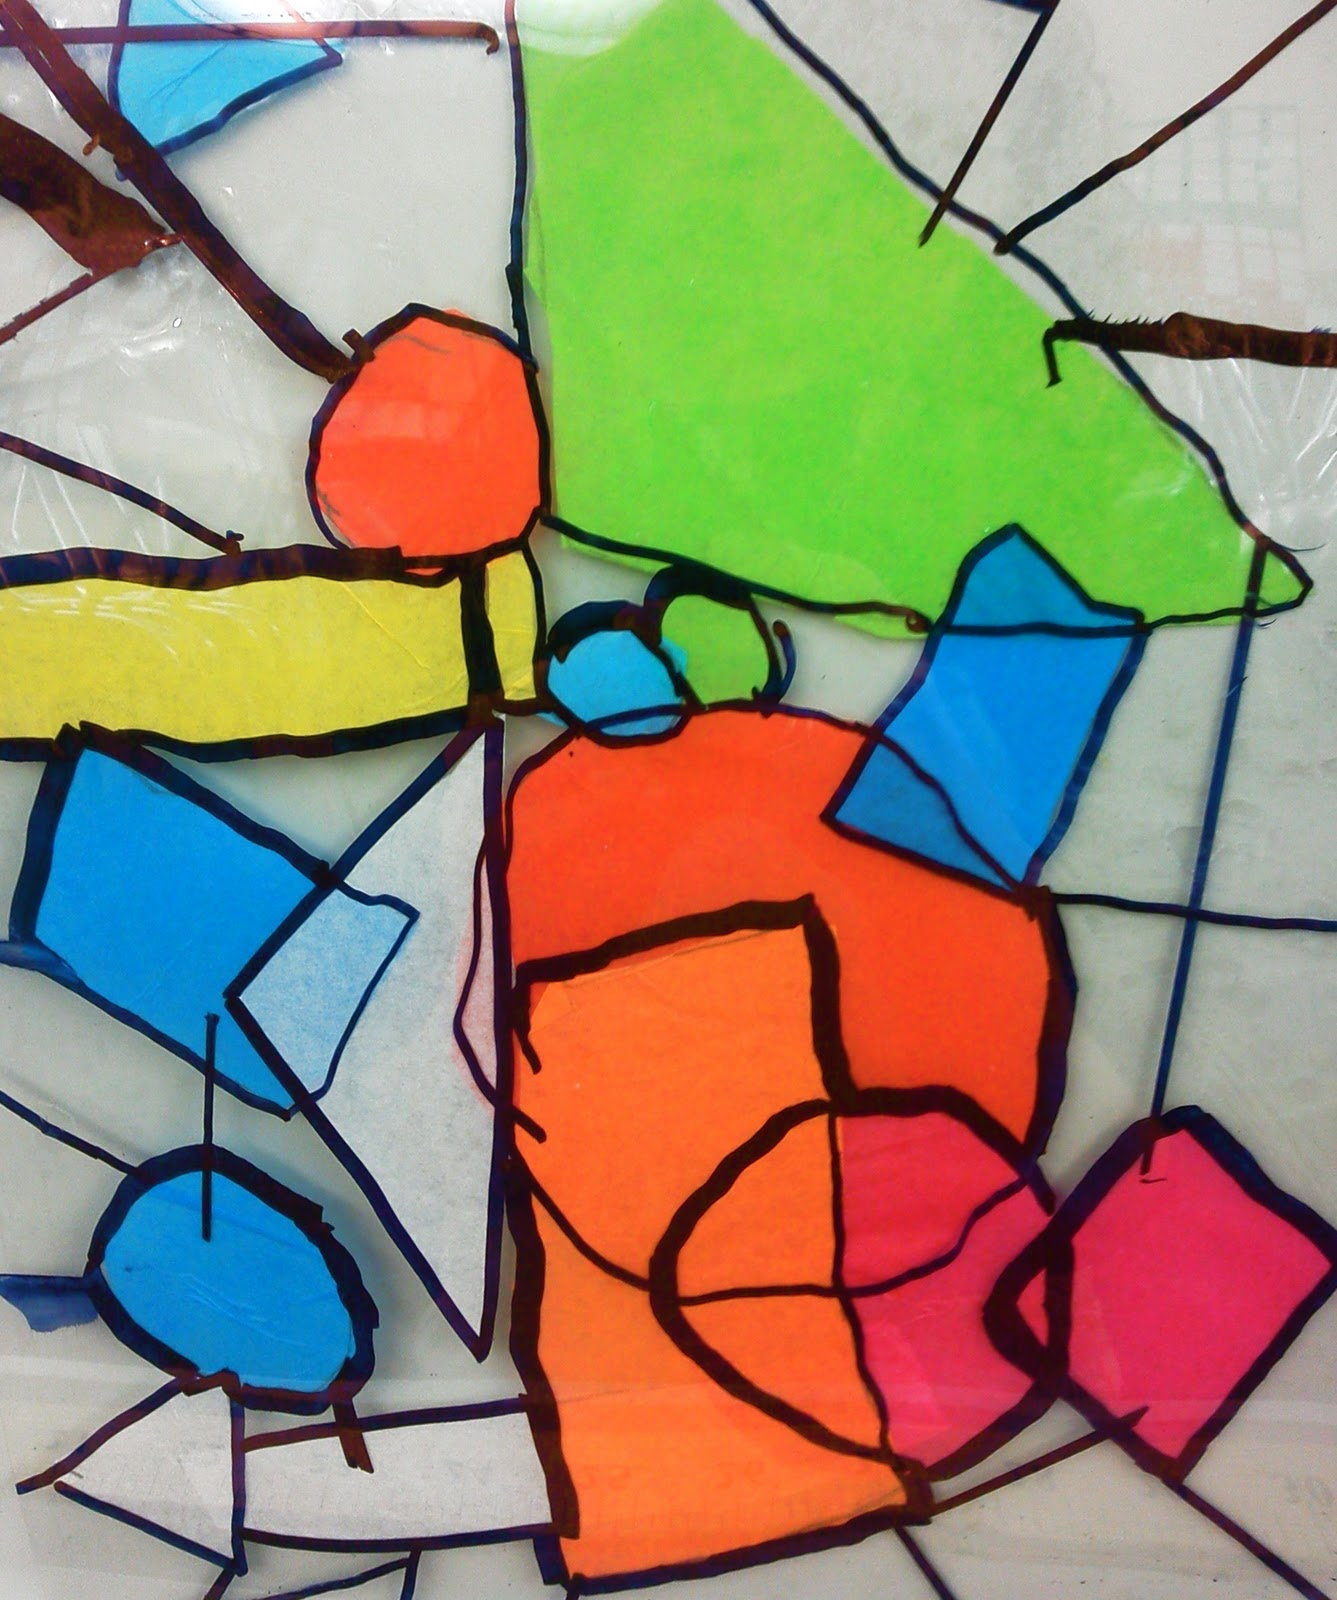 Candice ashment art artpalooza week day 1 stained for Stained glass window craft with tissue paper